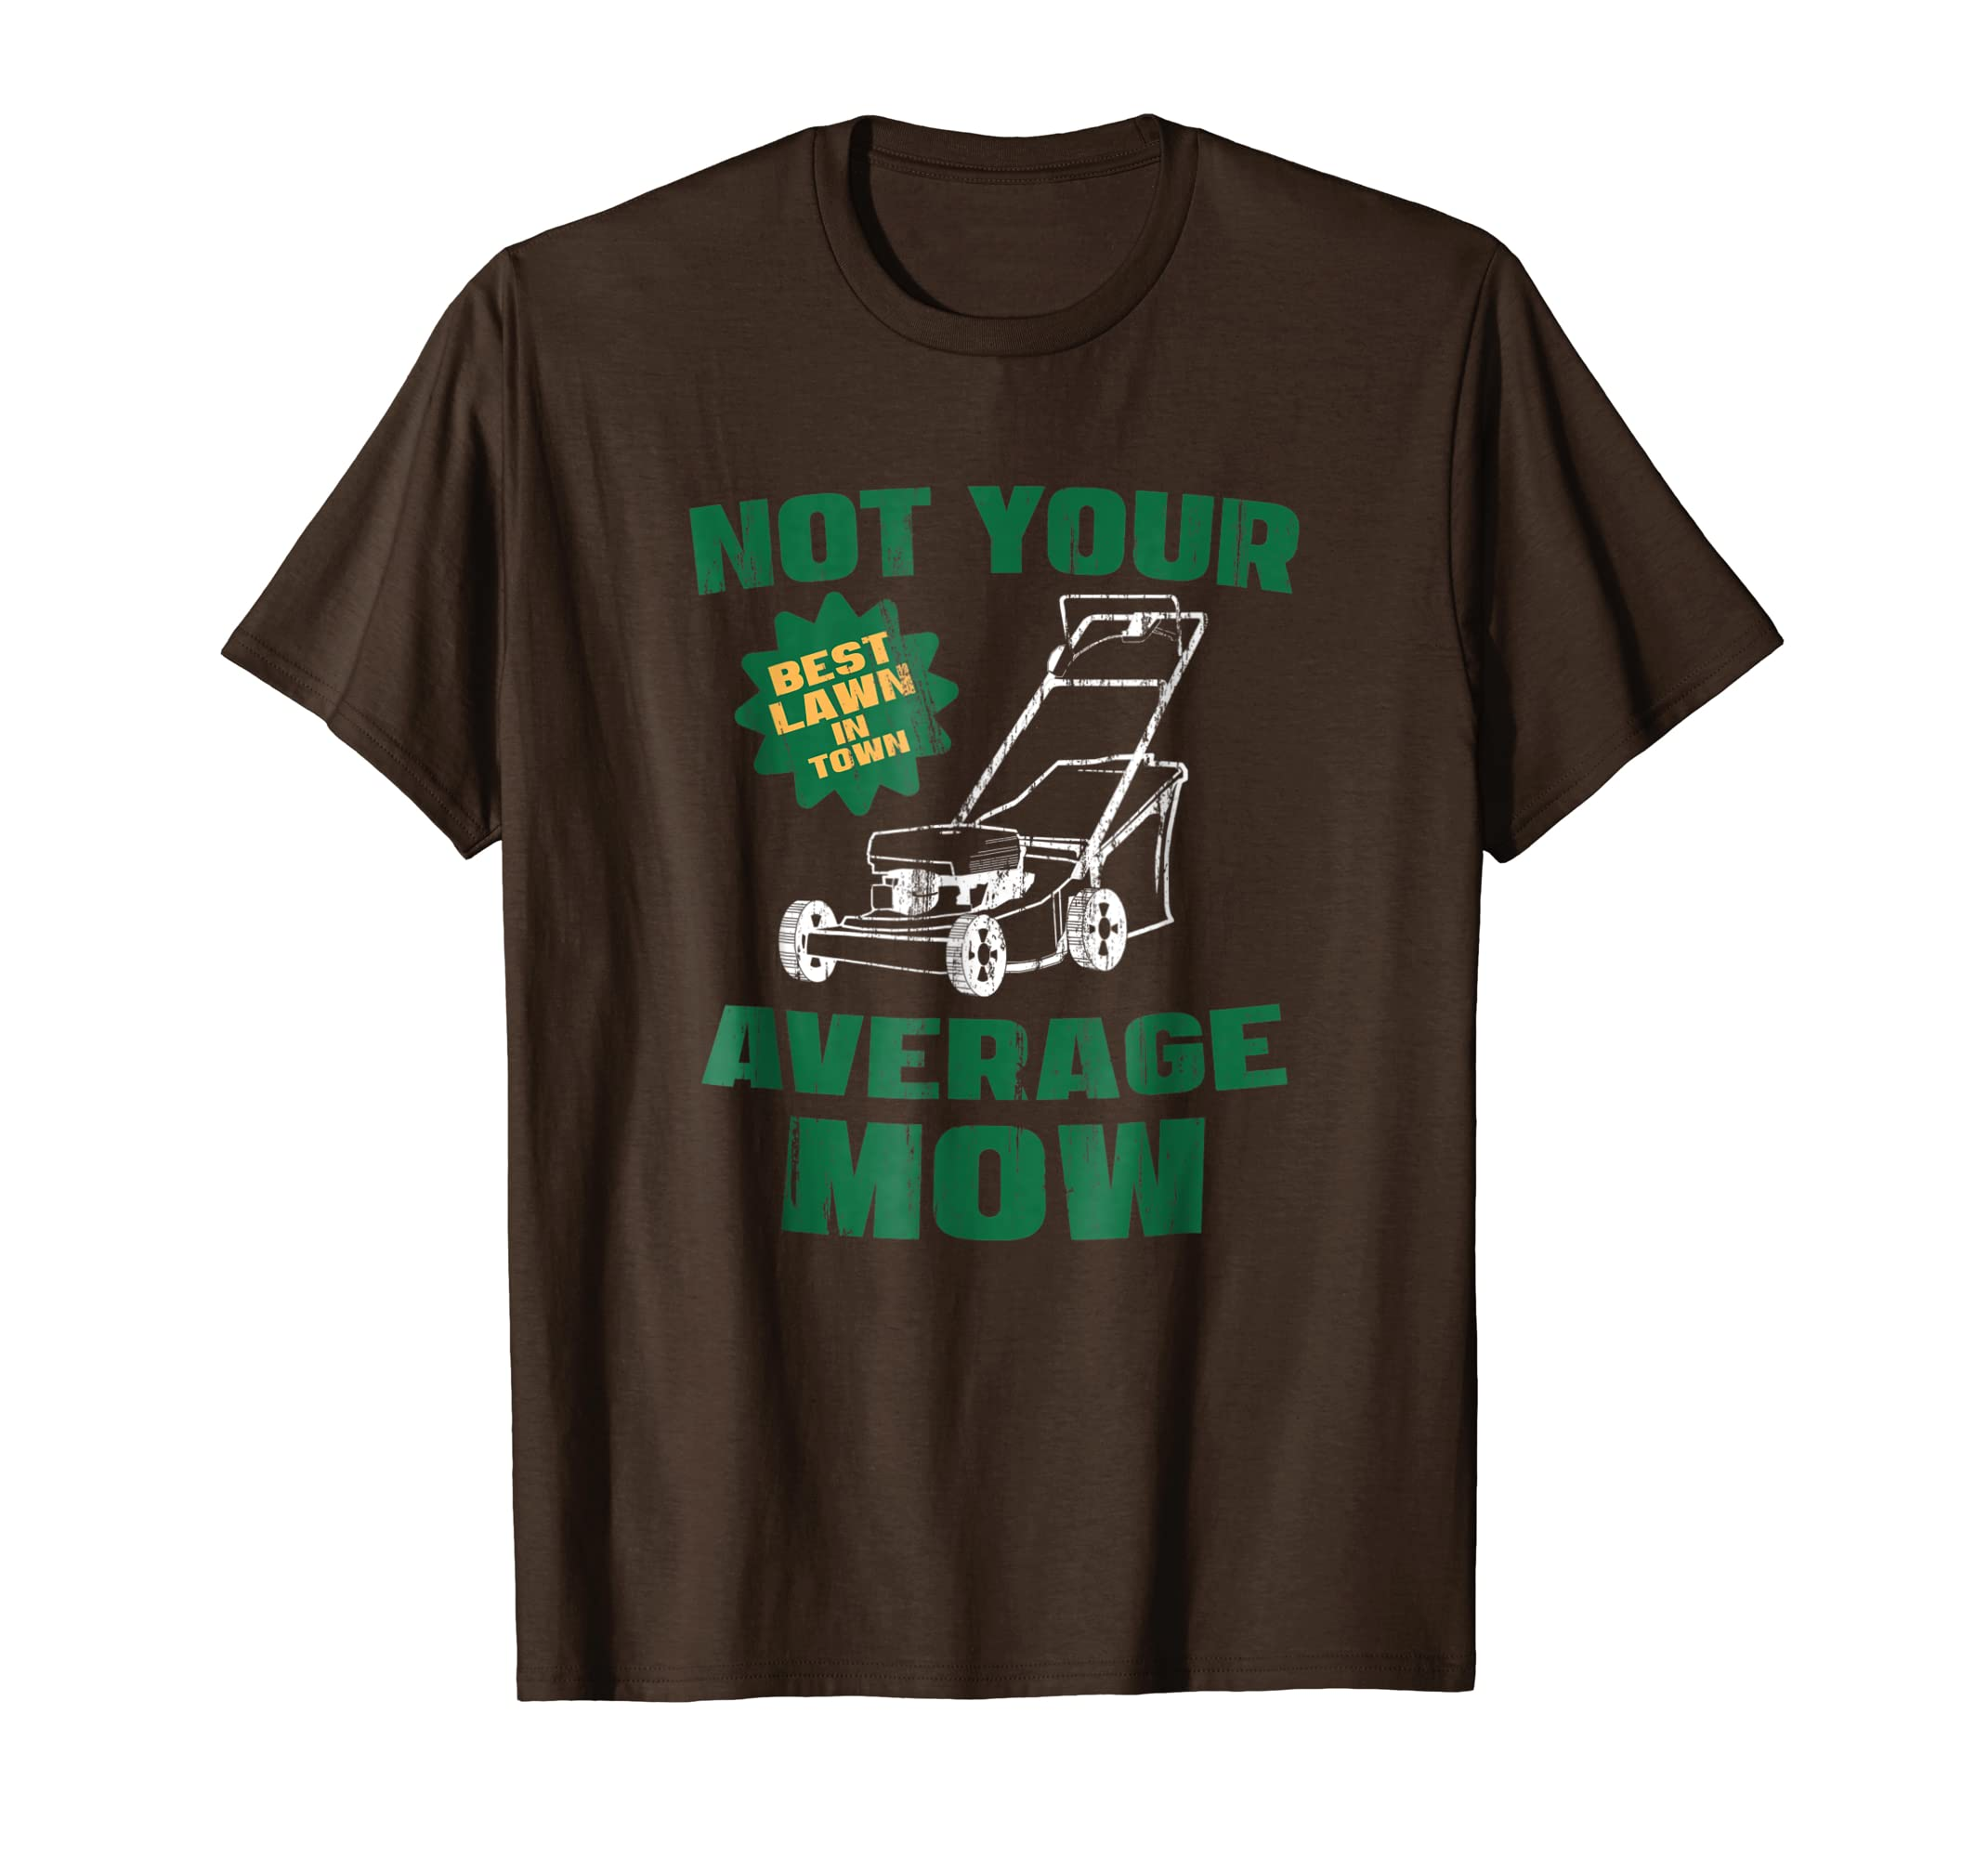 76cda9b0 Amazon.com: Mens Lawn Mower Landscaping NOT AVERAGE MOW Funny T Shirt:  Clothing